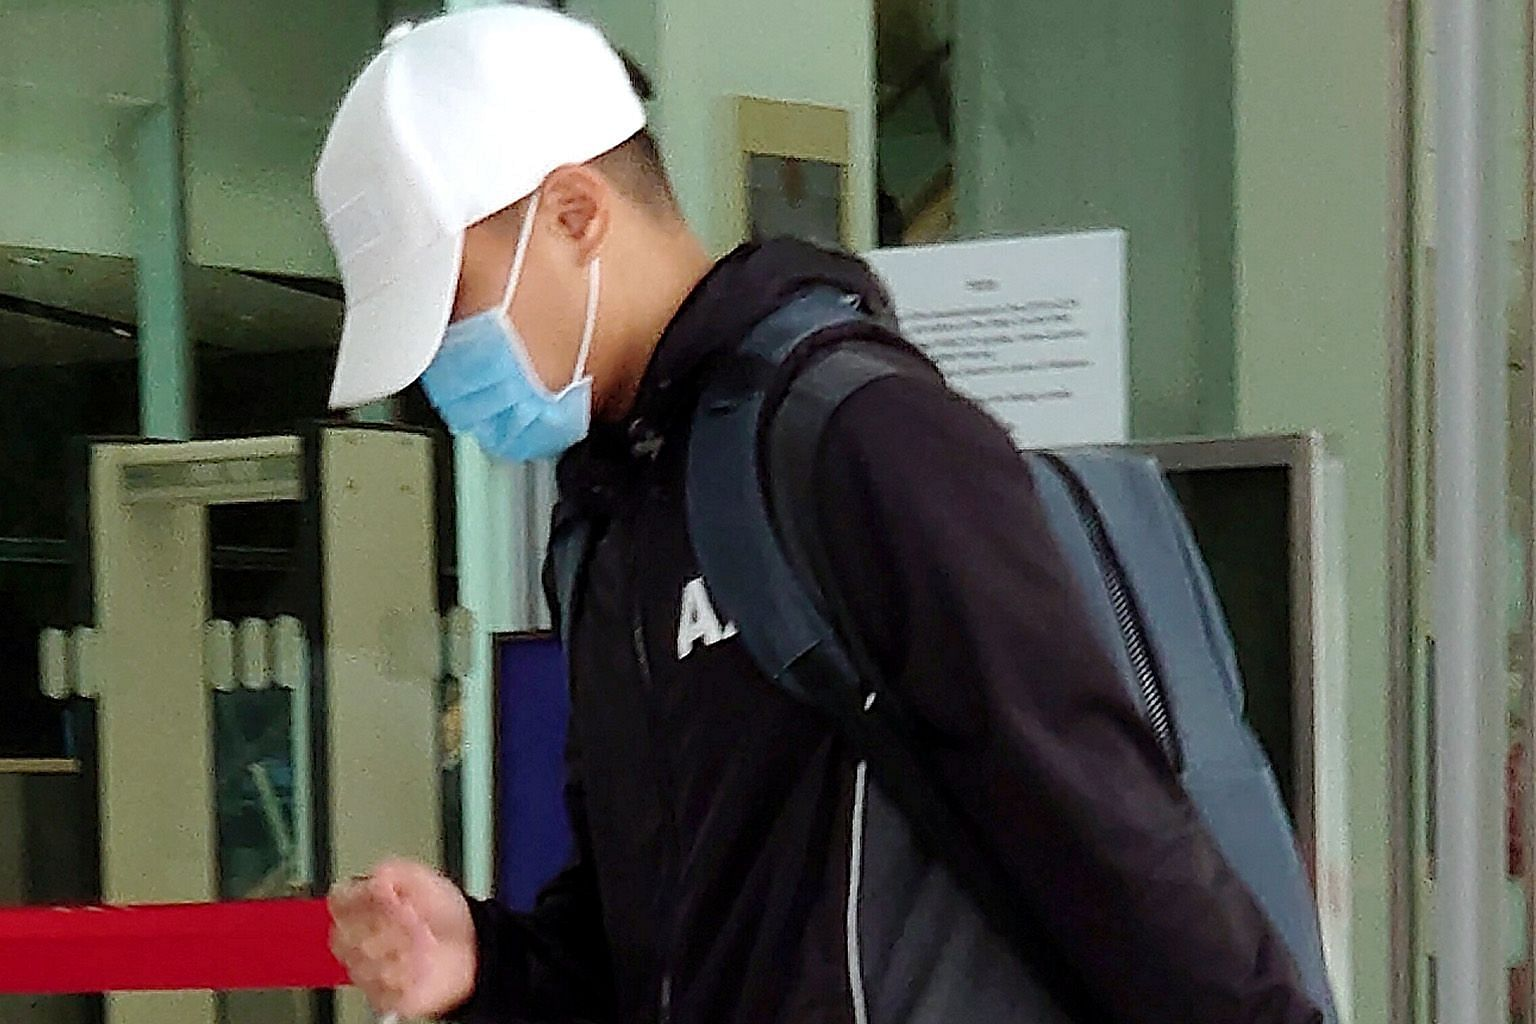 Student Yin Zi Qin was sentenced last Friday to a short detention order of 12 days and 80 hours of community service. Many observers have criticised the outcome of the case, believing the punishment was disproportionate to the offence. ST PHOTO: WONG